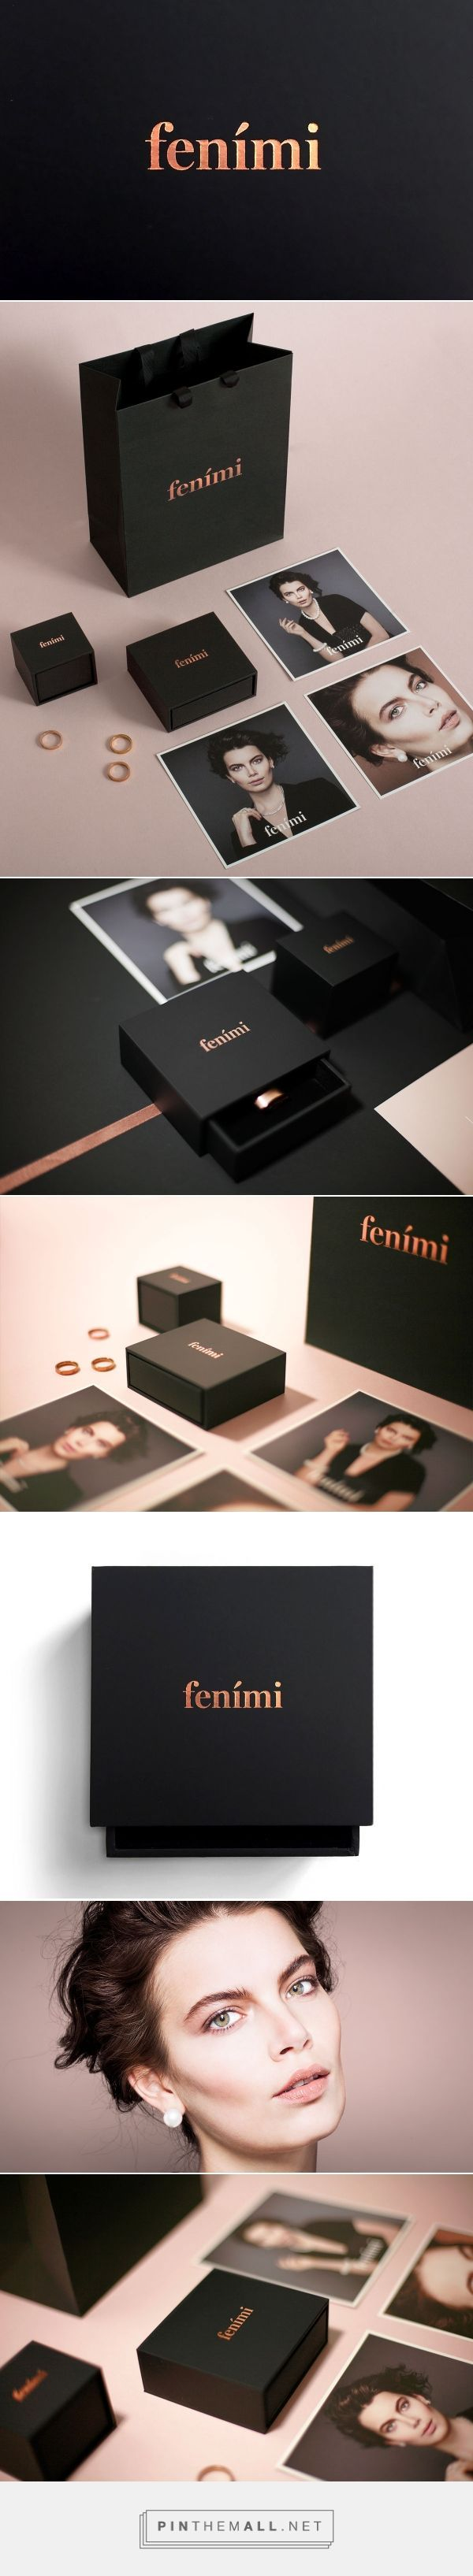 Fenimi Jewelry Branding by Ontwerpbureau Reiters | Fivestar Branding – Design and Branding Agency & Inspiration Gallery | #BrandingInspiration. If you're a user experience professional, listen to The UX Blog Podcast on iTunes.